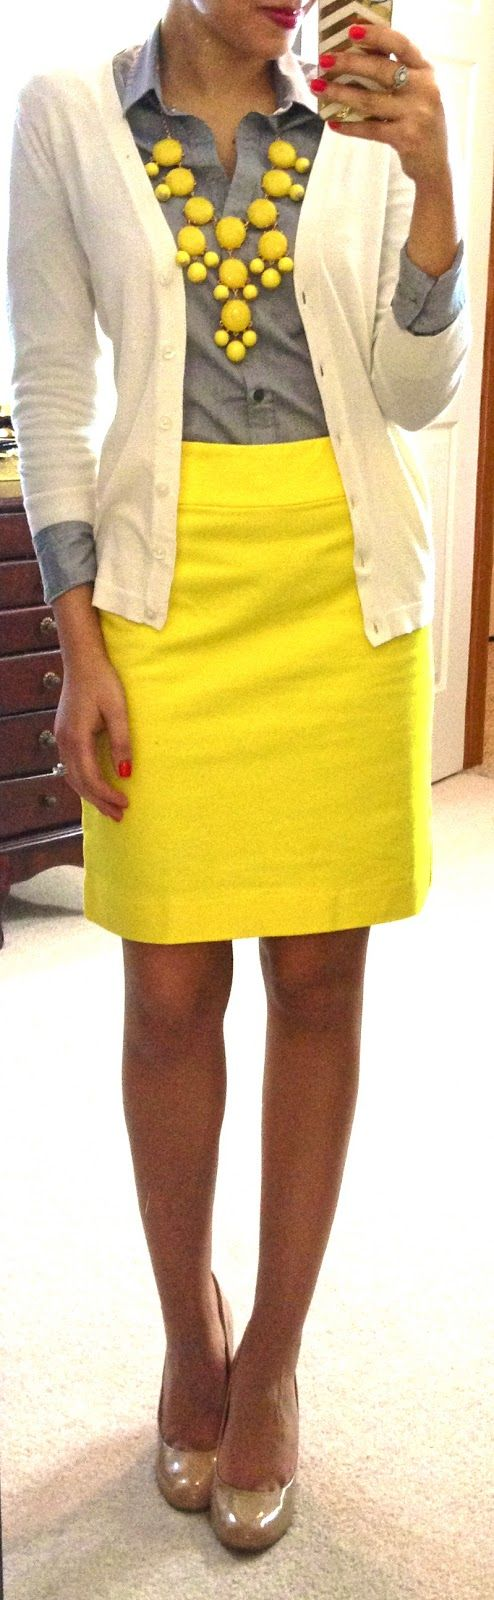 Bright yellow skirt gray button down cream cardigan bright yellow bauble necklace nude heels ...